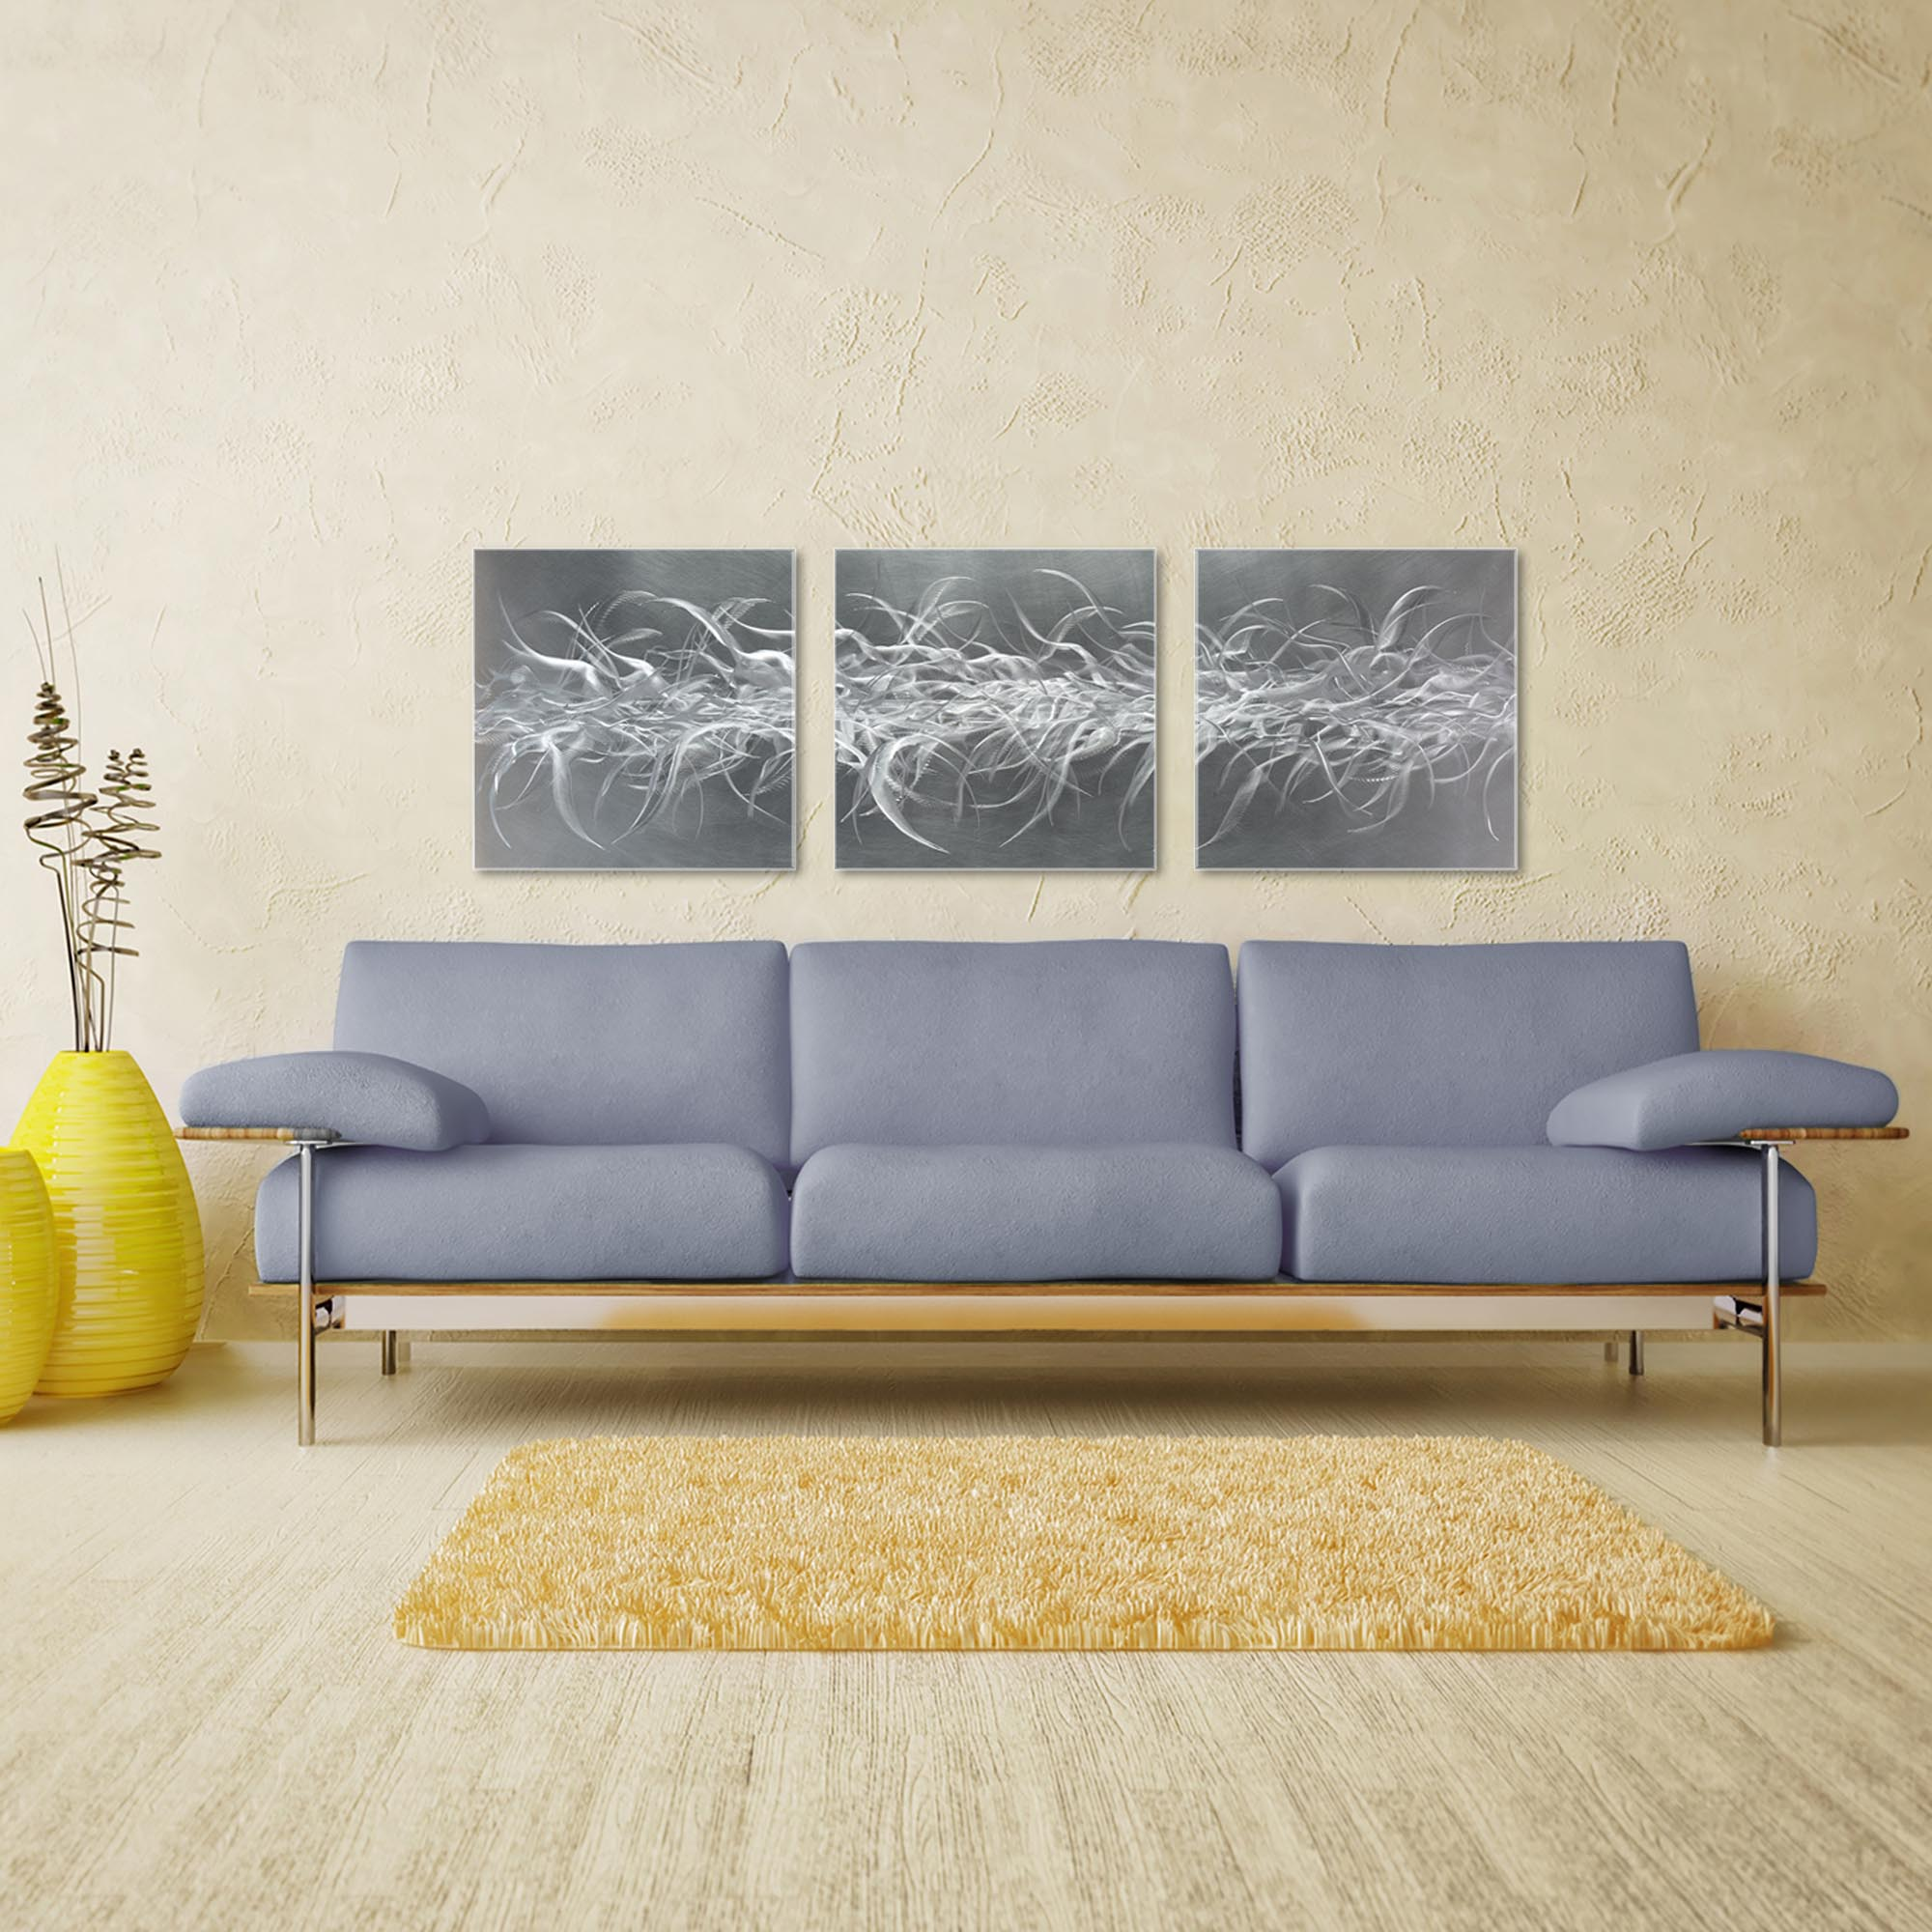 Electric Fields Triptych Large 70x22in. Metal or Acrylic Contemporary Decor - Image 3